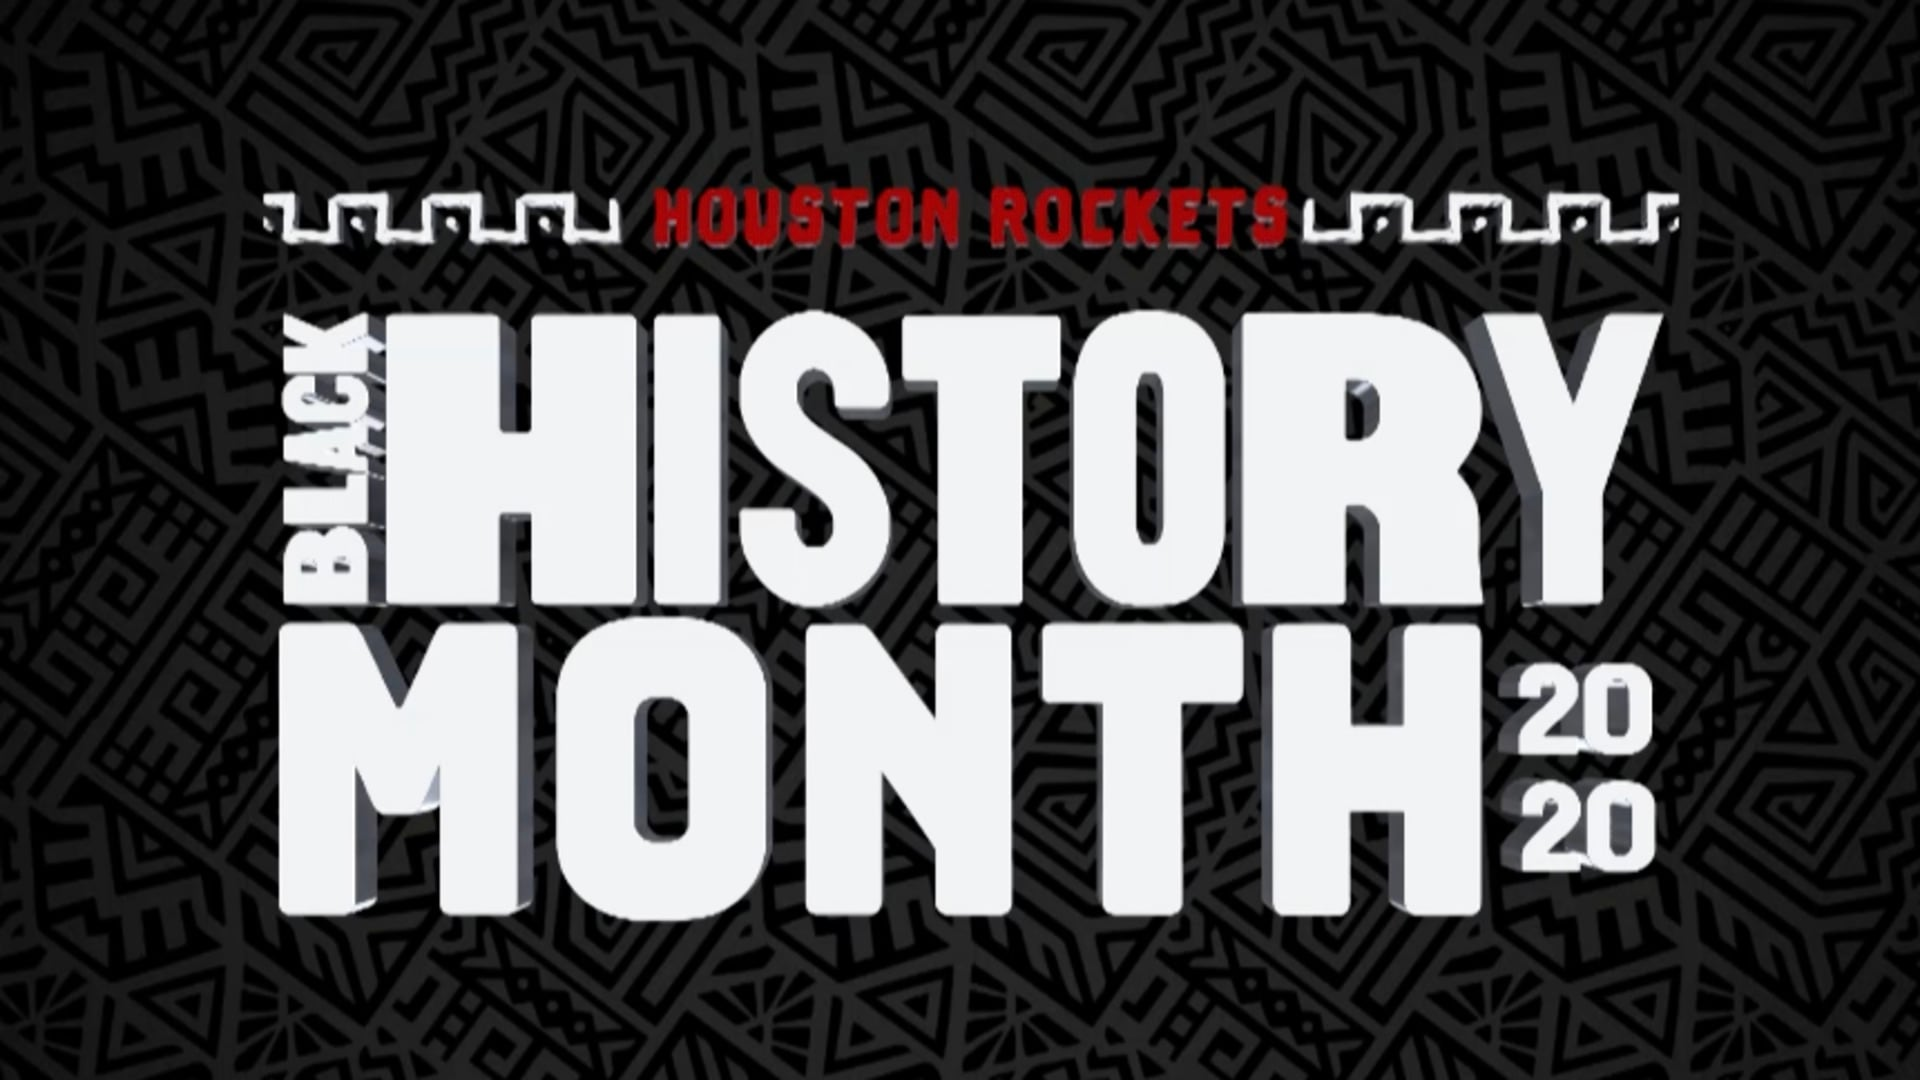 Rockets Celebrate Black History Month - Emancipation Park